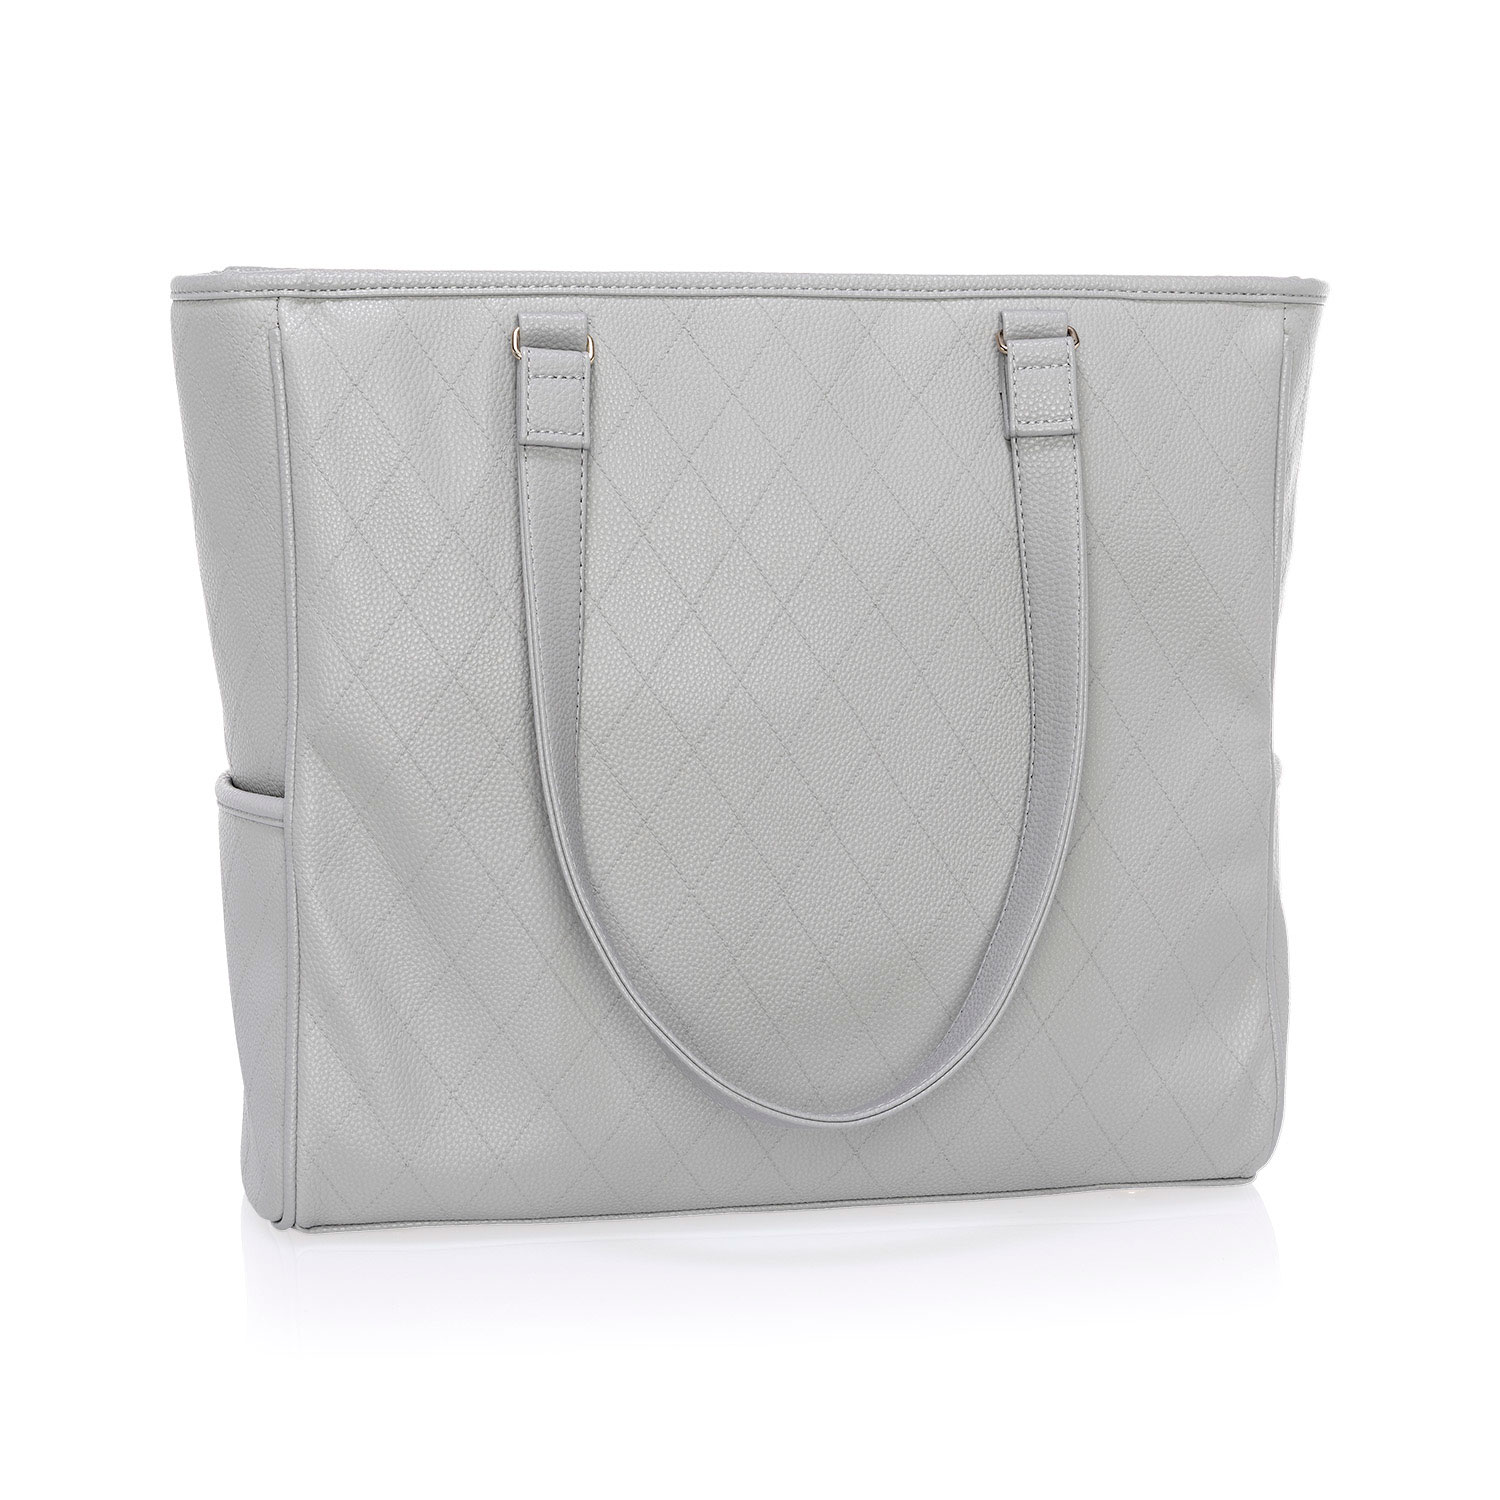 0c3f95e2d5386 Whisper Grey Diamond Pebble - Cindy Tote Ltd. - Thirty-One Gifts ...